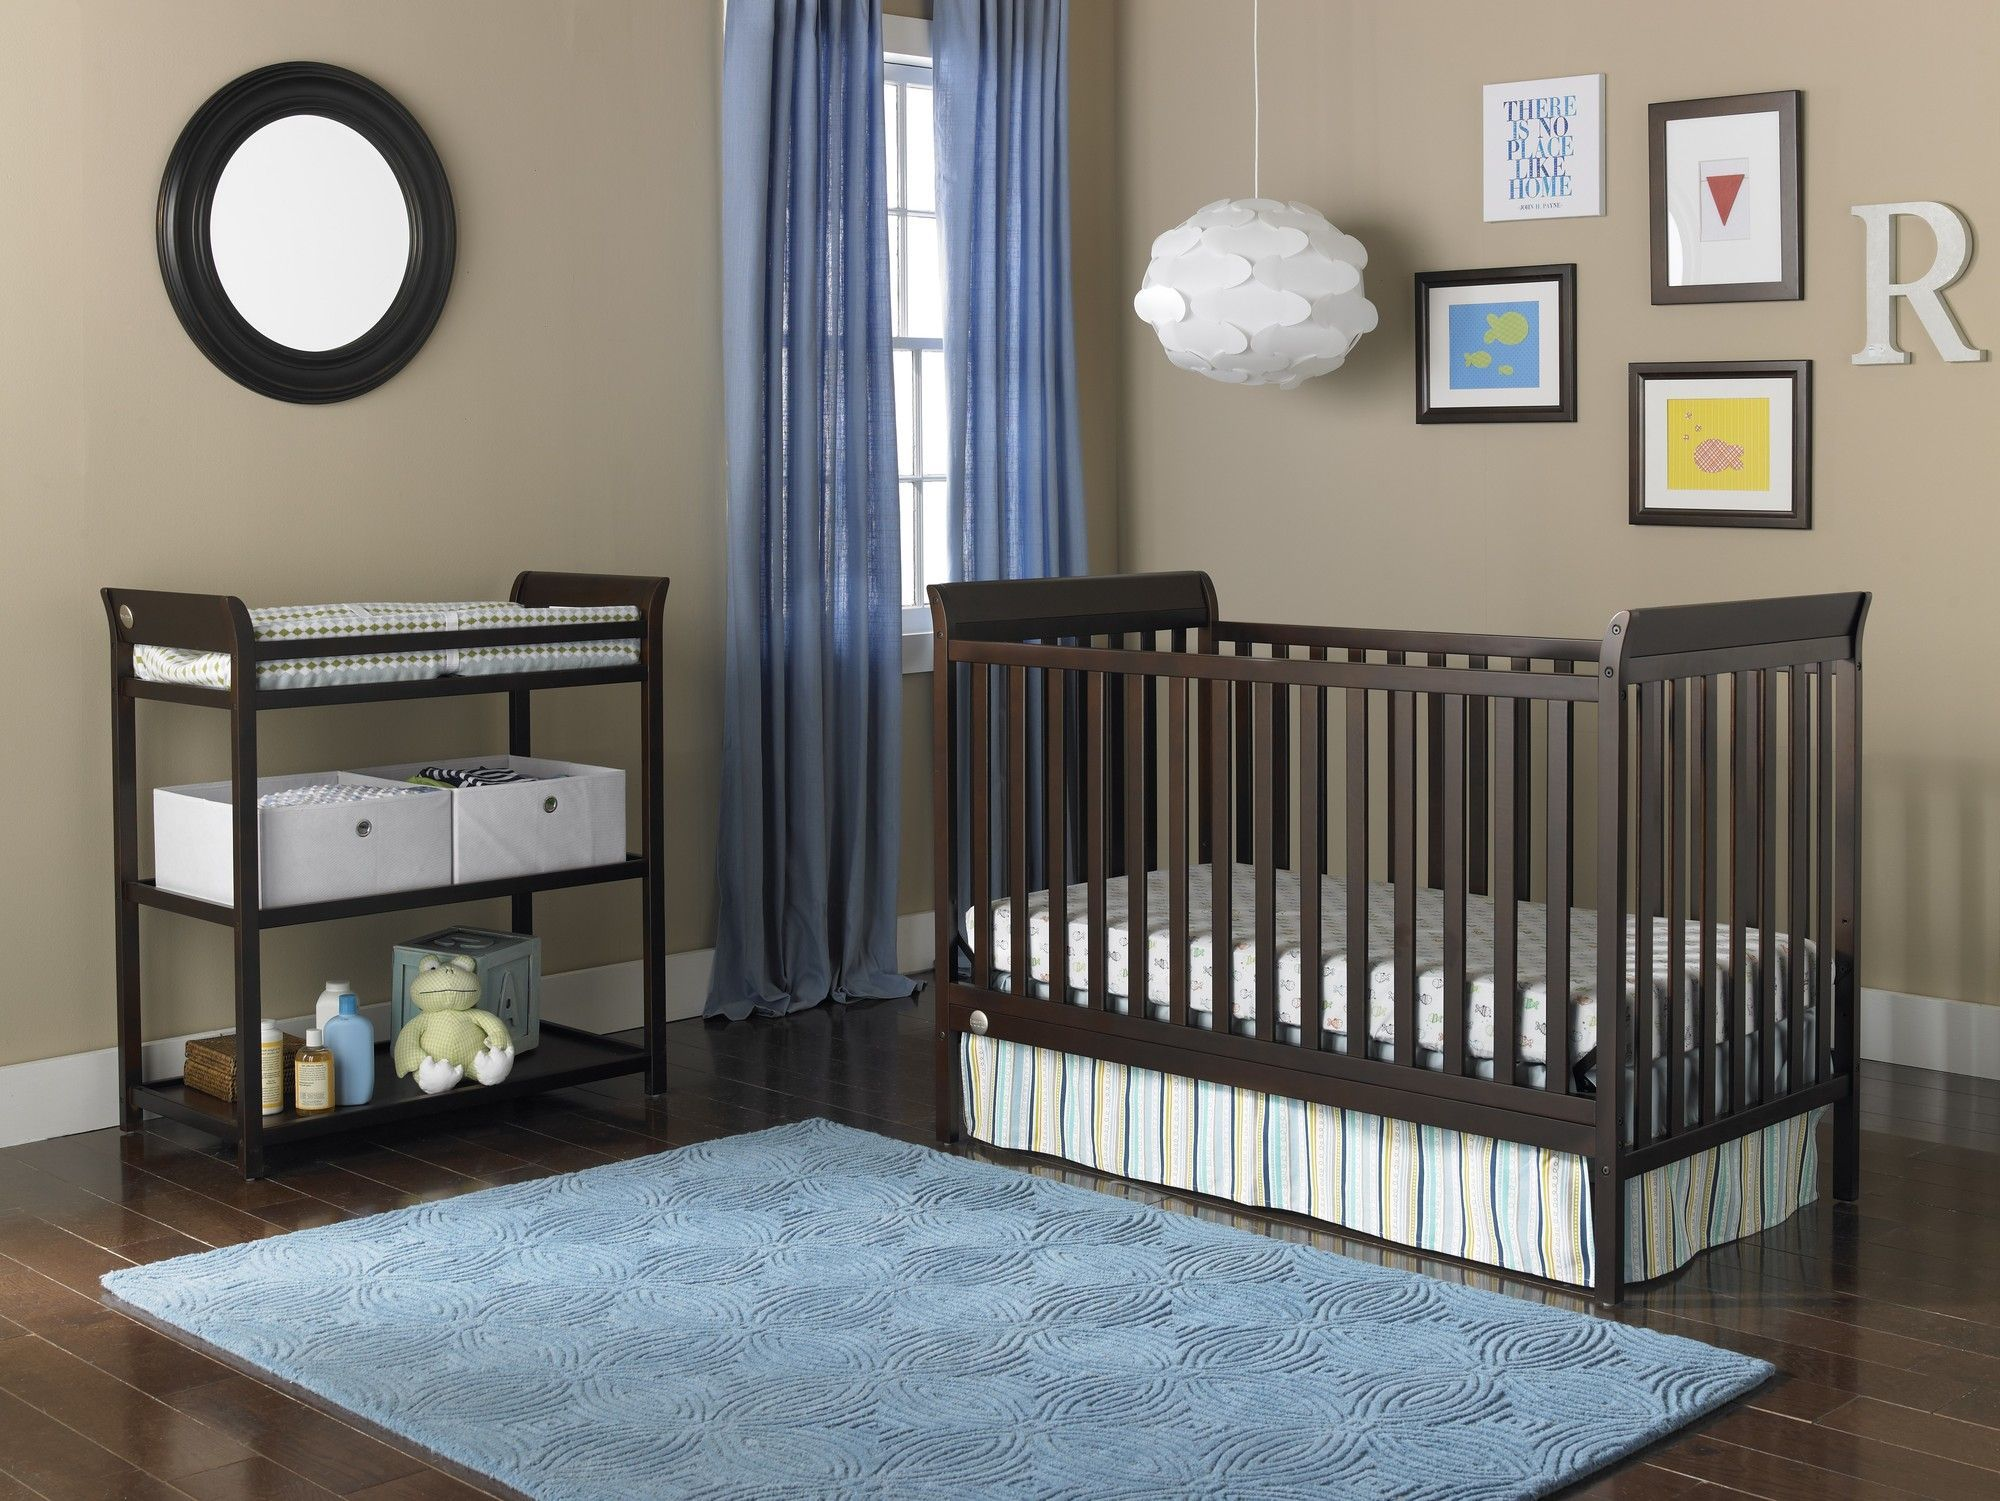 6 Piece 3-in-1 Convertible Crib Set with Mattress | Products | Pinterest